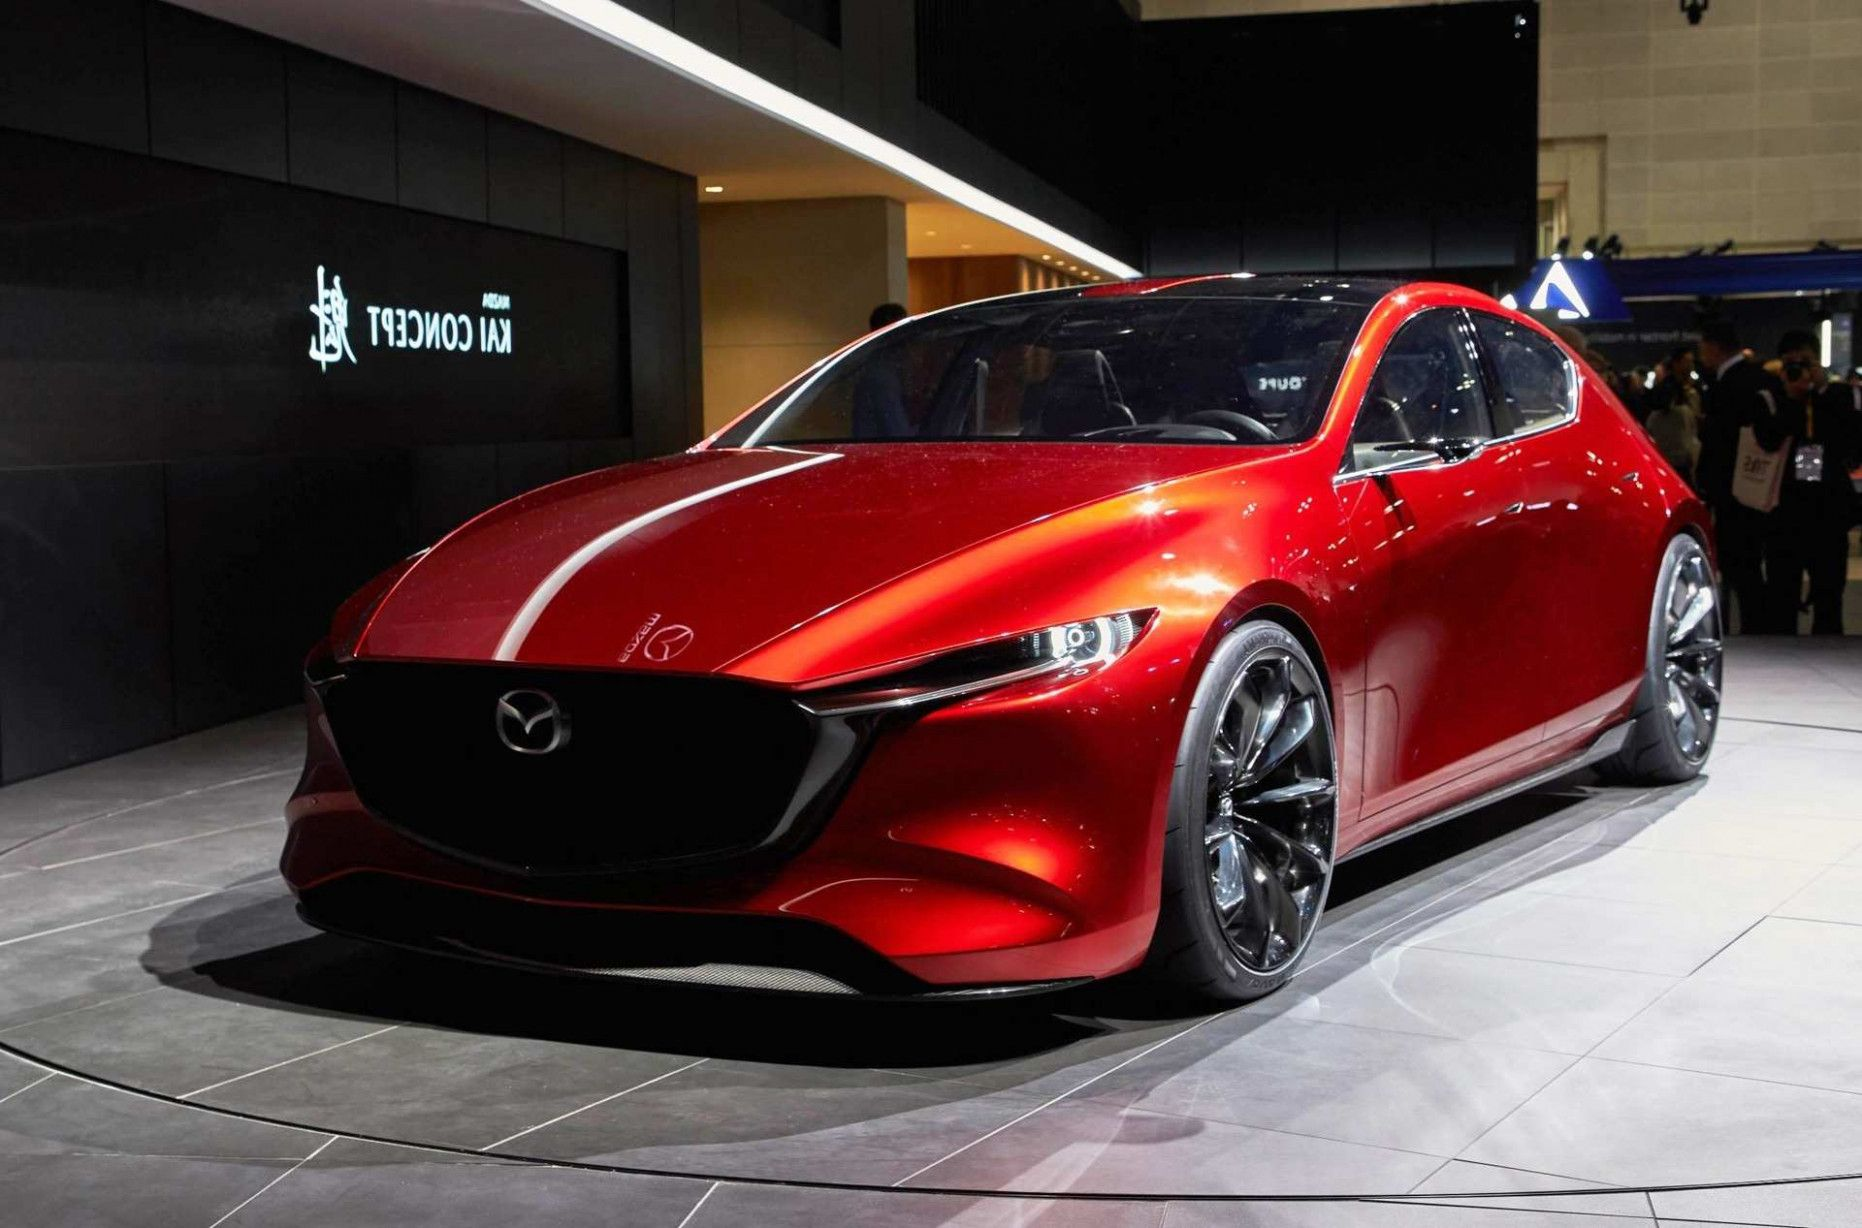 10 Stereotypes About Mazda 3 2020 Price In Egypt That Arent Always True Mazda Mazda 3 Concept Cars